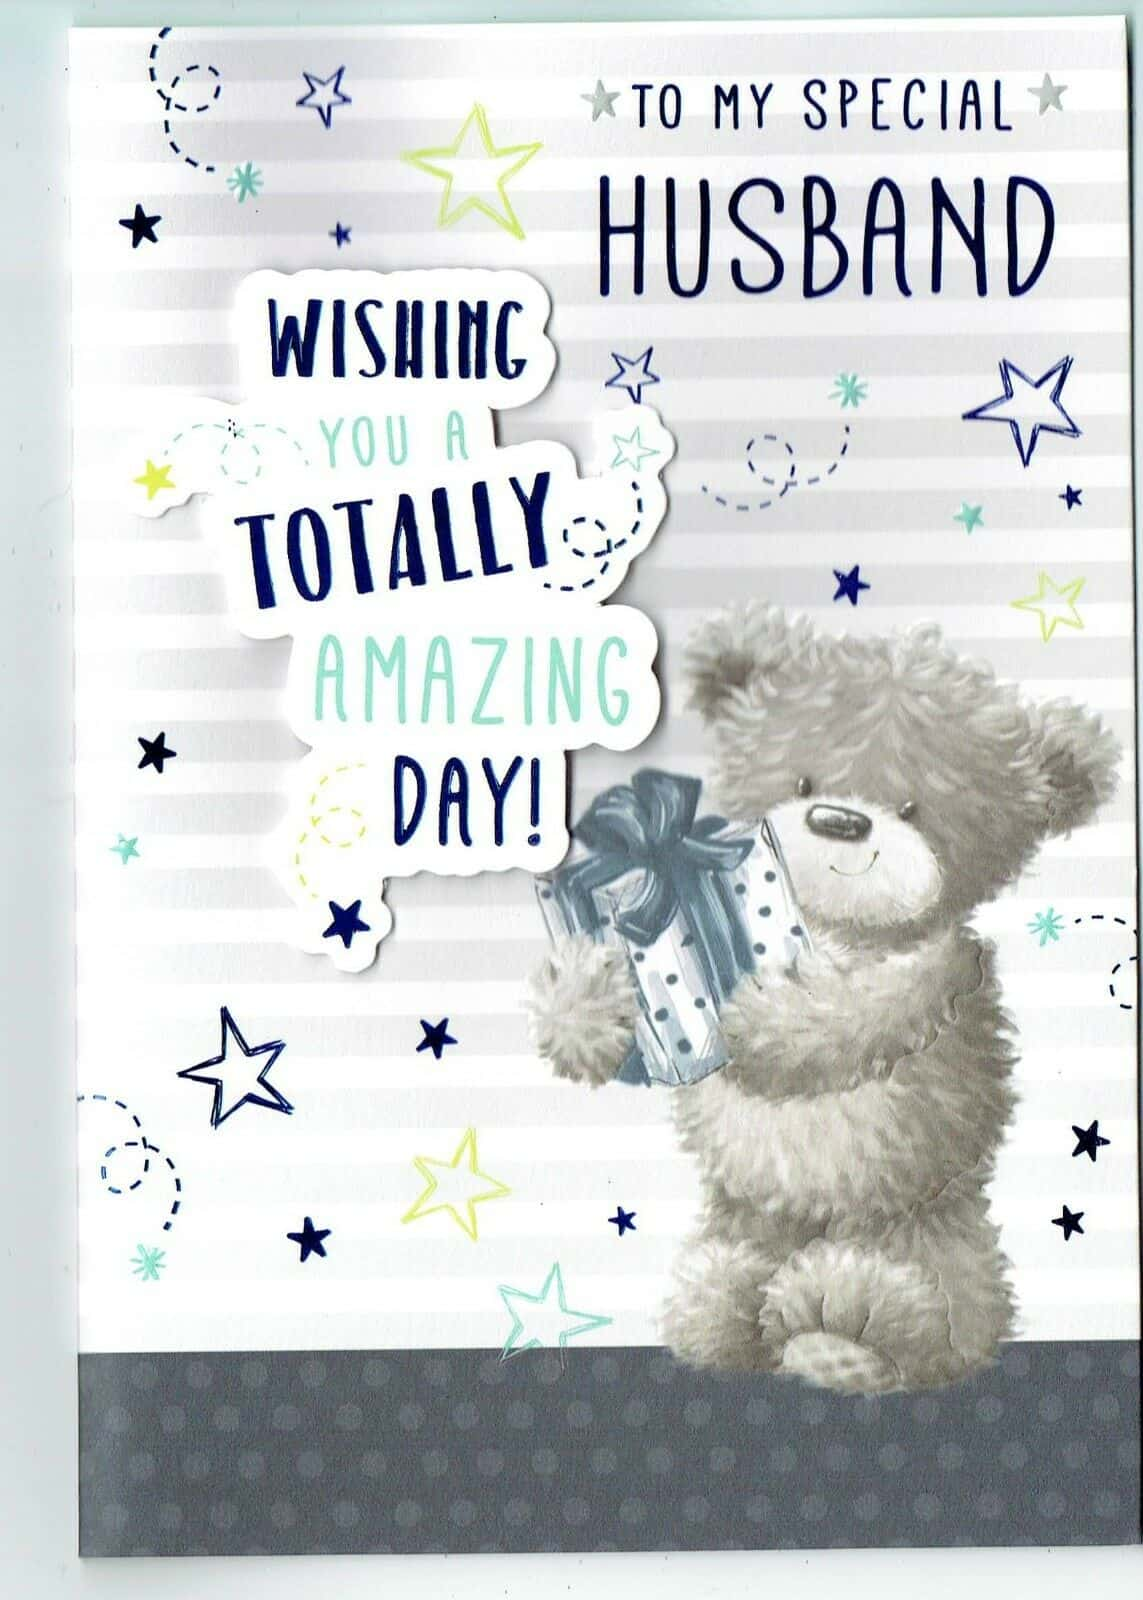 husband birthday card 'to my special husband'  with love